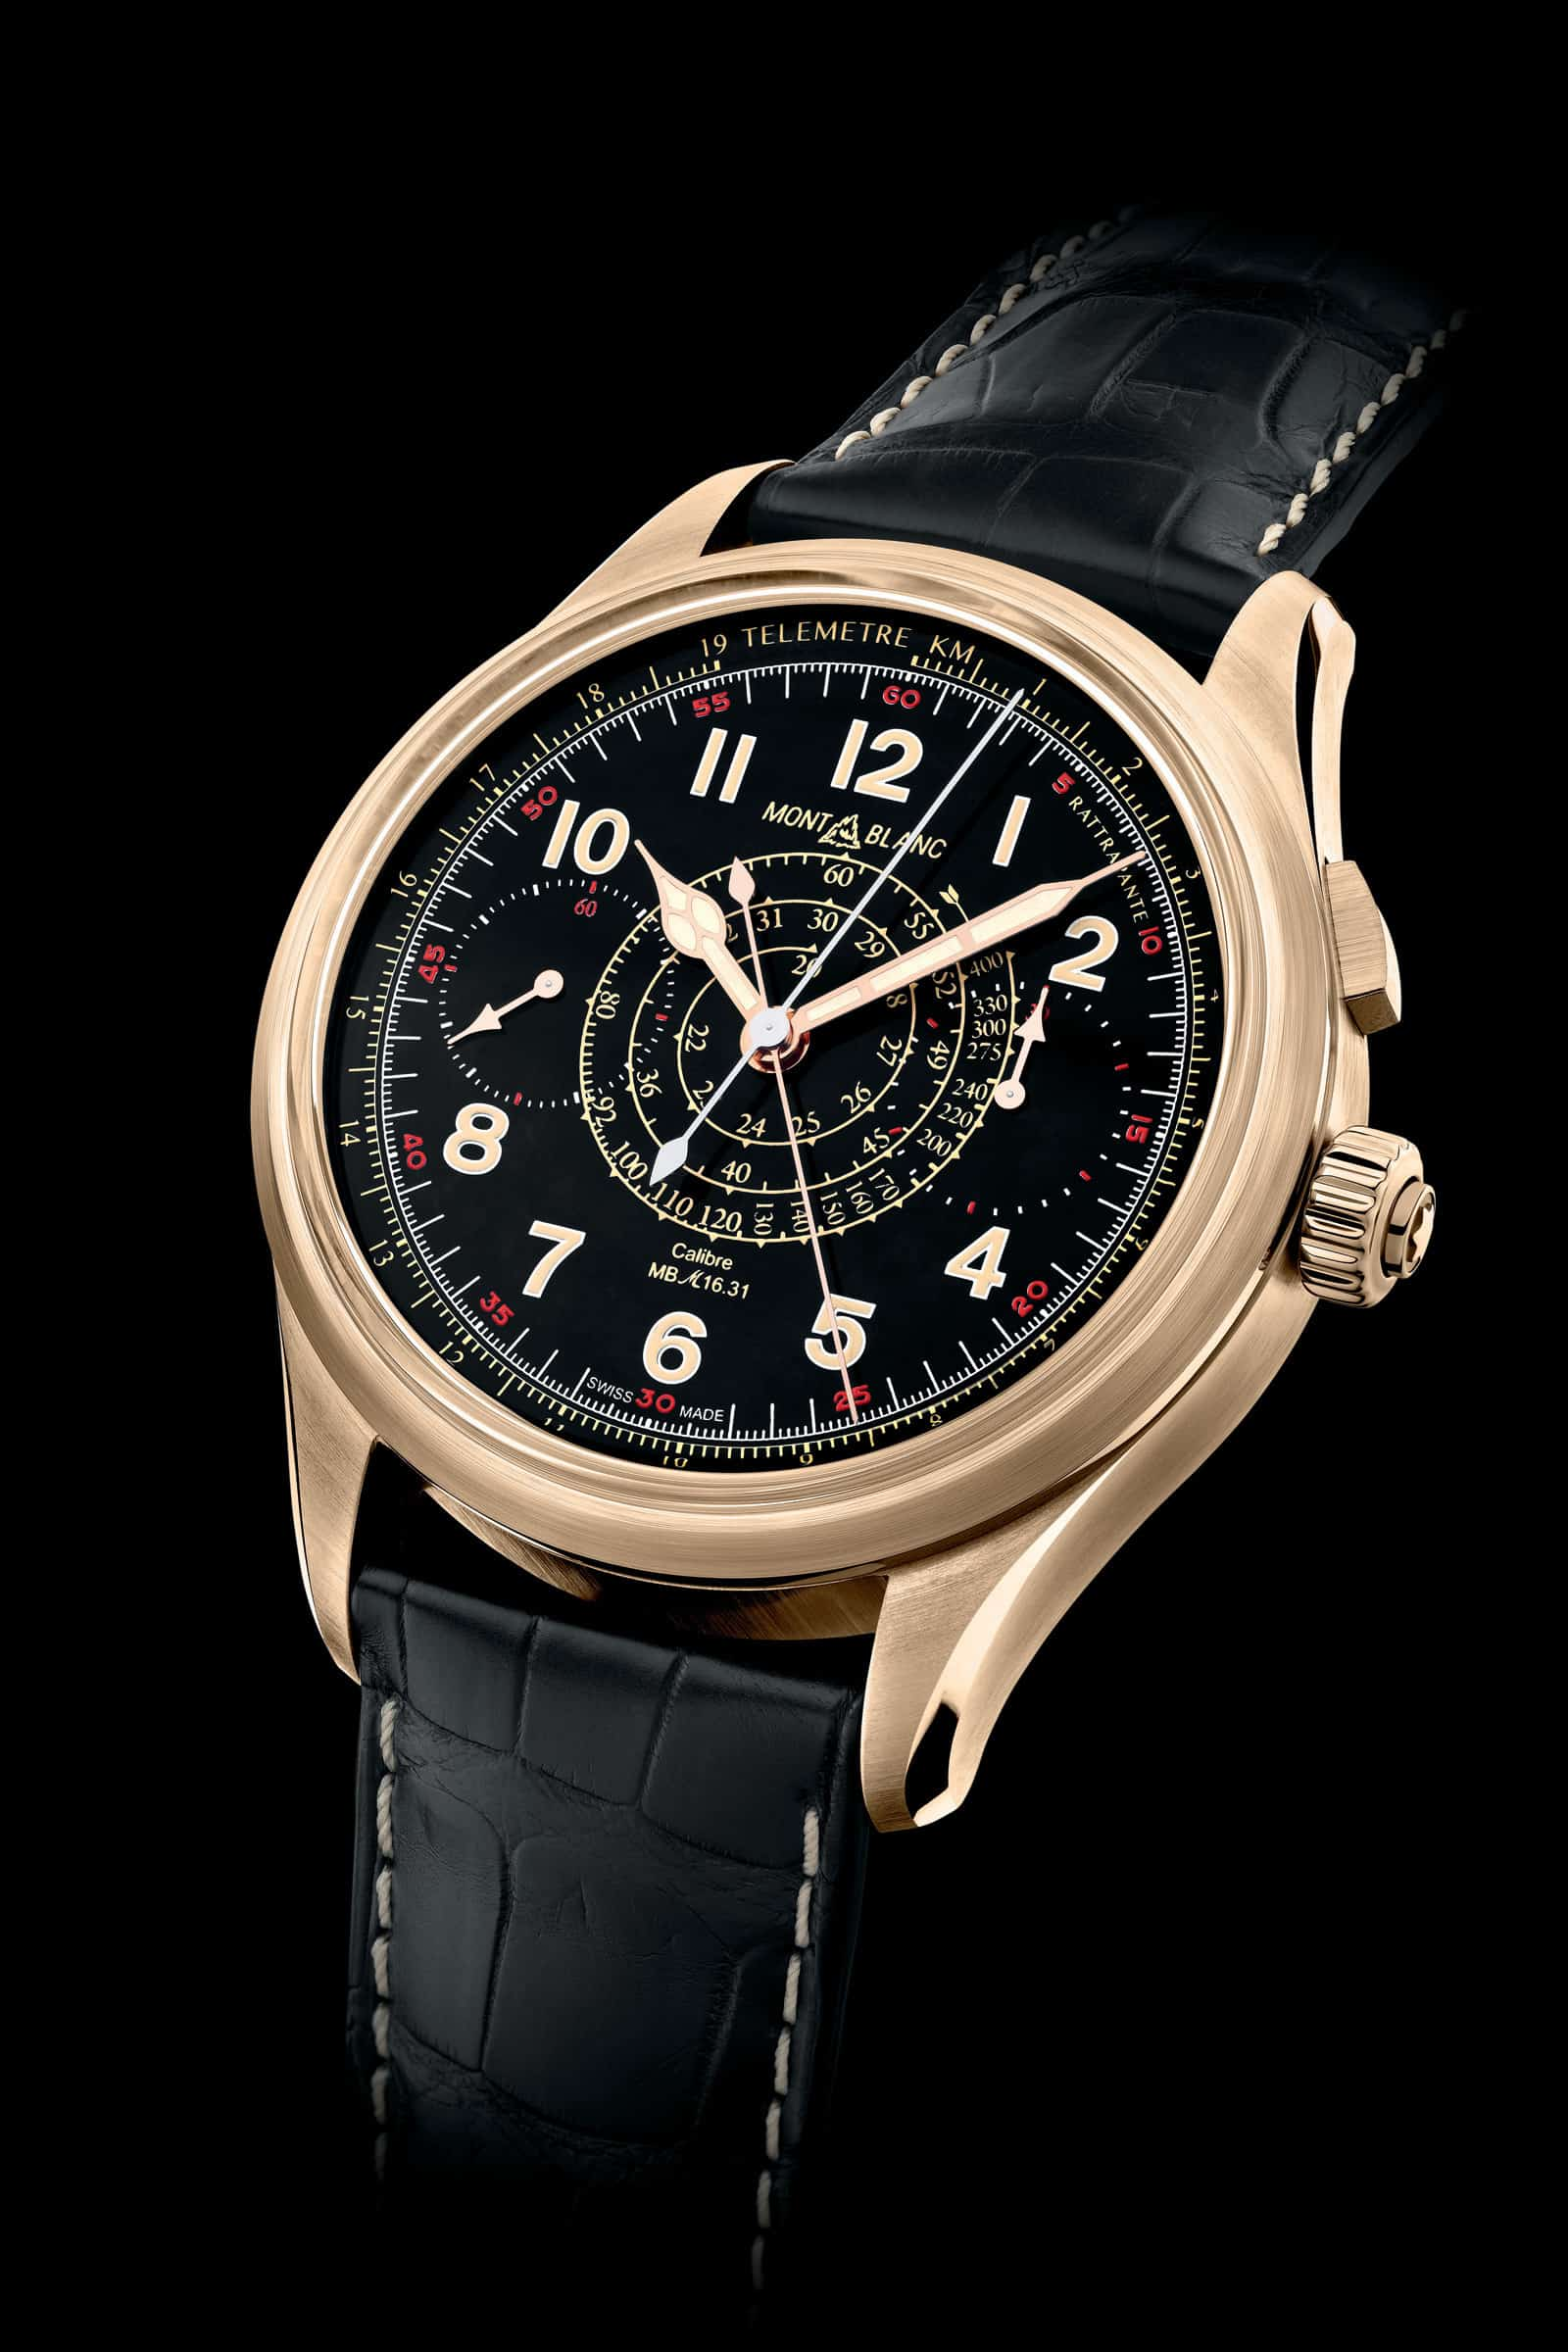 Montblanc_1858_Split Second Chronograph_119910 (2)